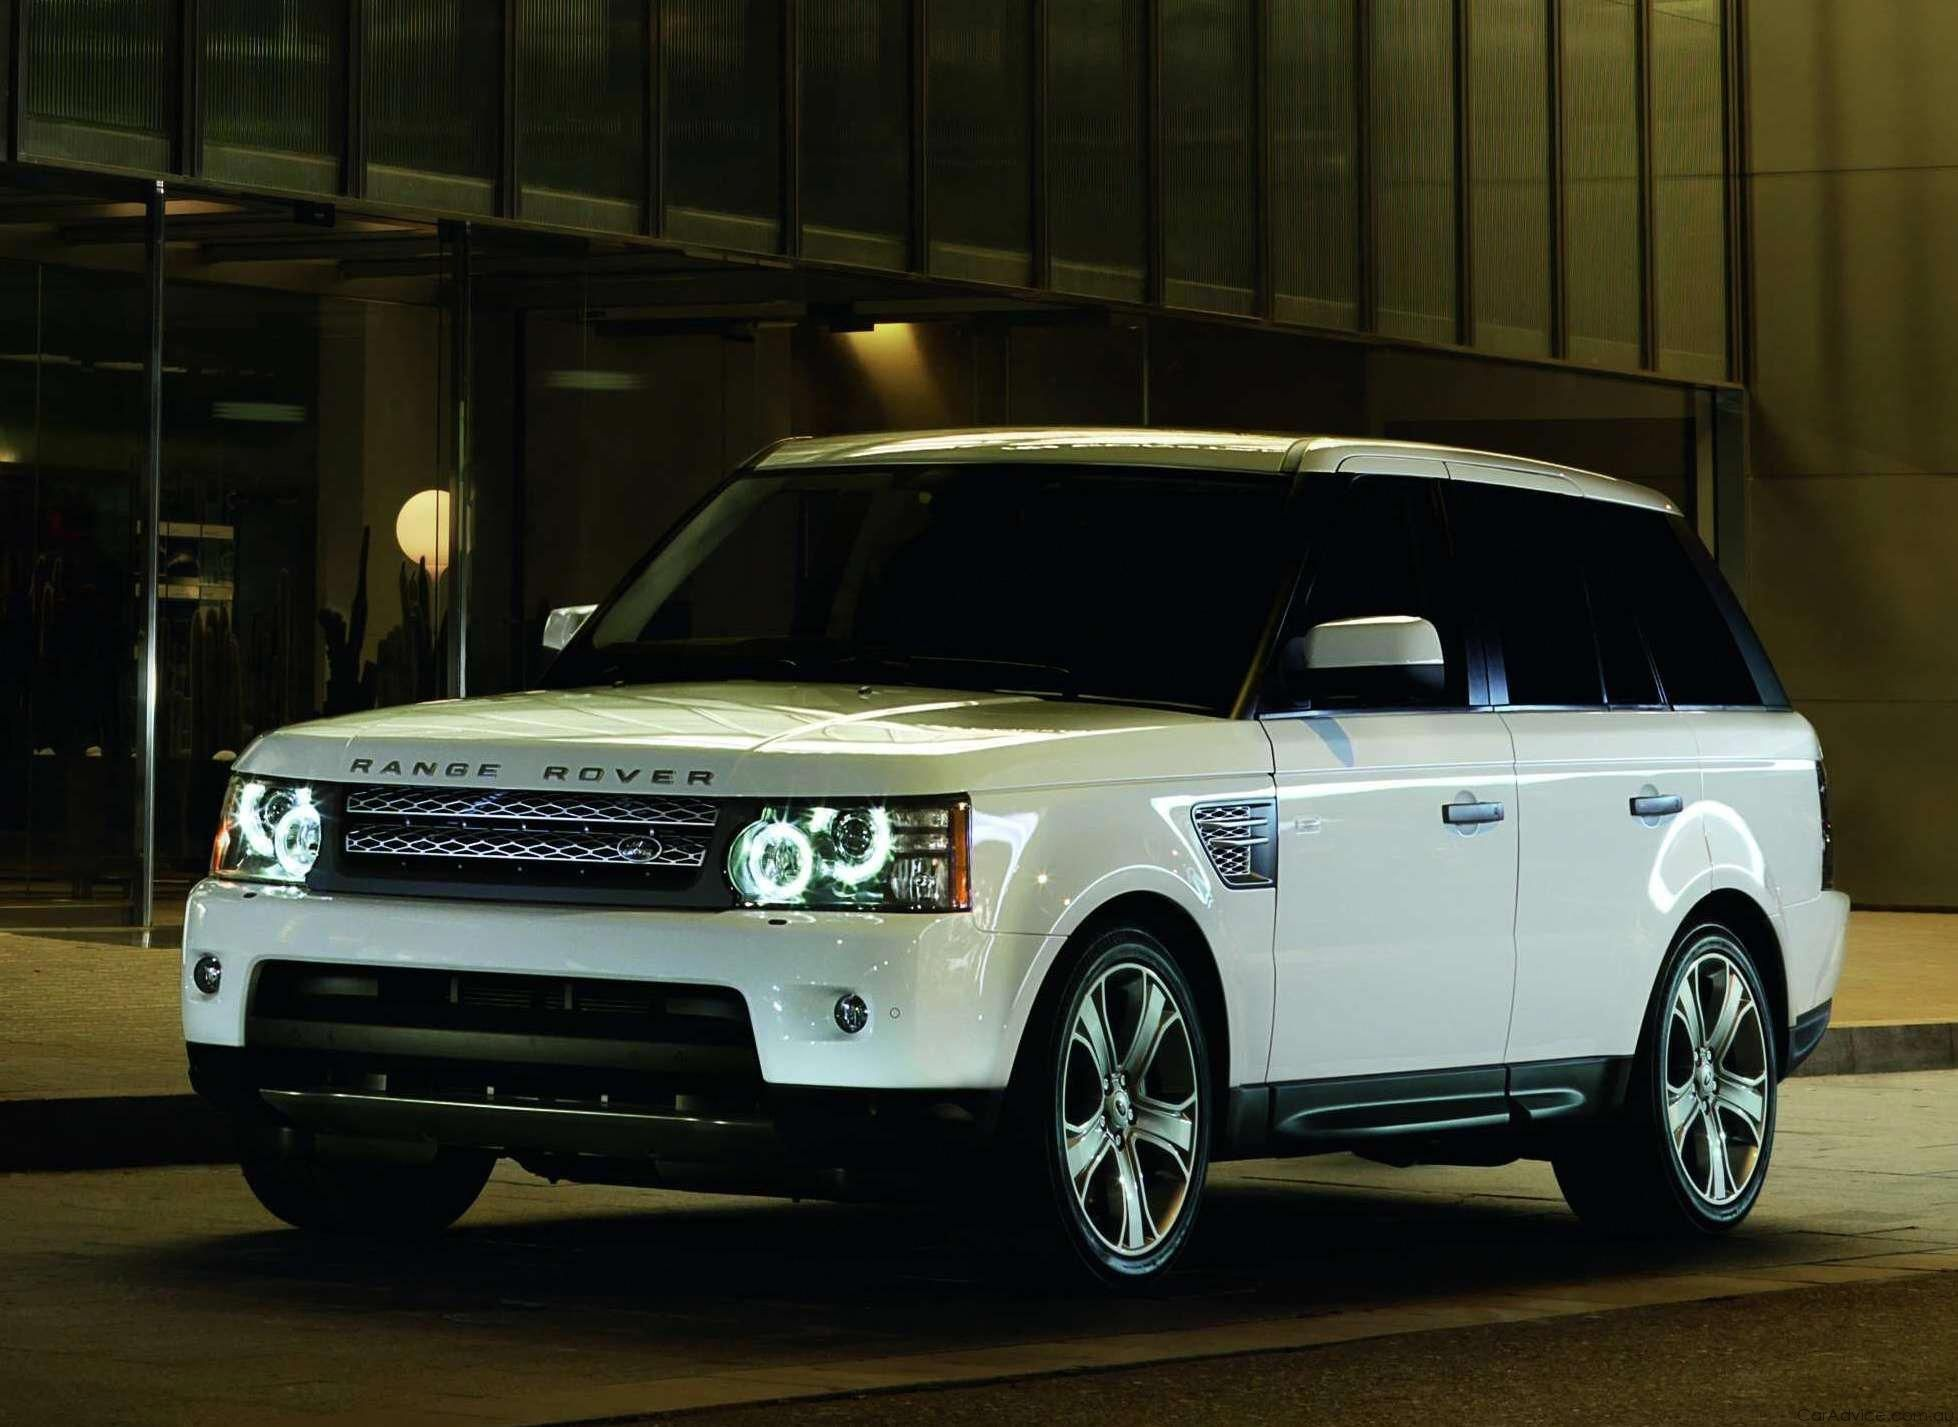 Pin by Robbie Follins on Car in 2020 Range rover sport